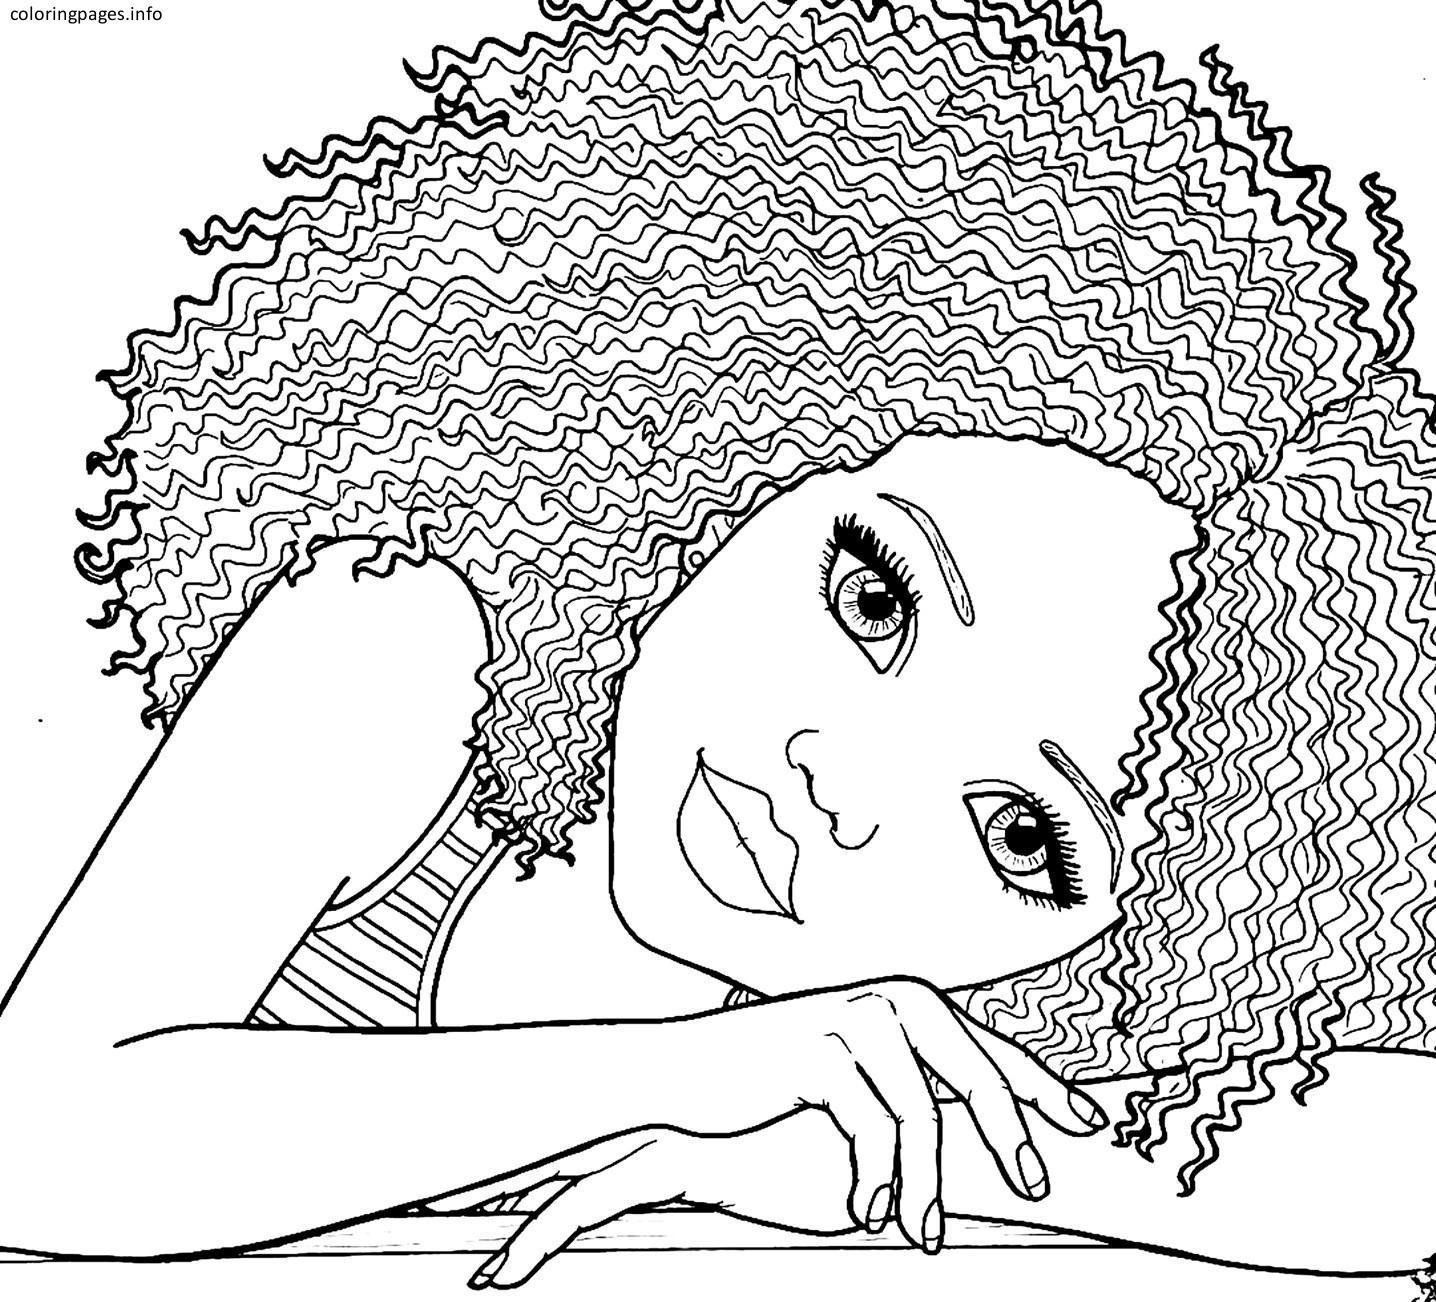 Tower Of Babel Coloring Page Beautiful Black Girl Coloring Pages Encourage African American Draw Coloring Pages For Girls Barbie Coloring Pages Barbie Coloring